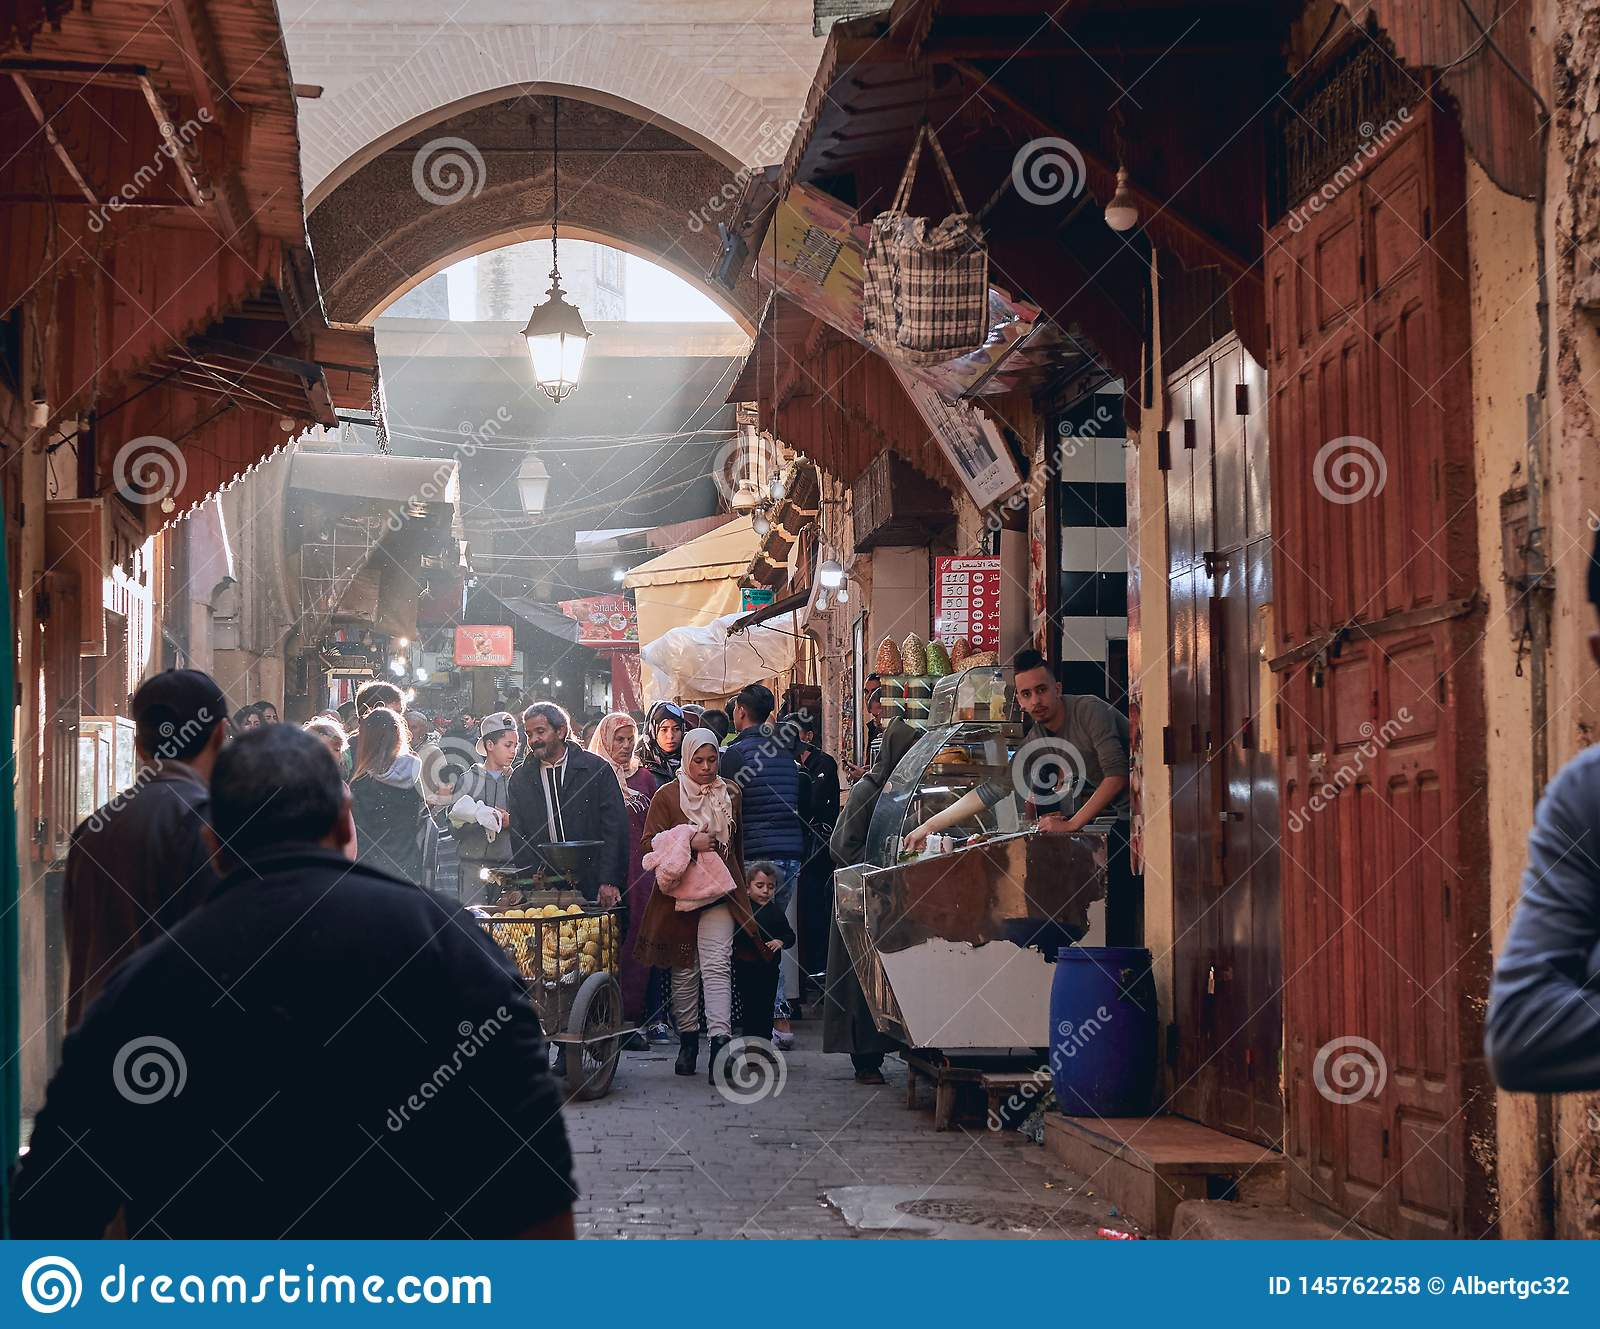 Fez, Morocco - December 07, 2018: Moroccan lady with her daughter walking through a passage of the fez medina with rays of light